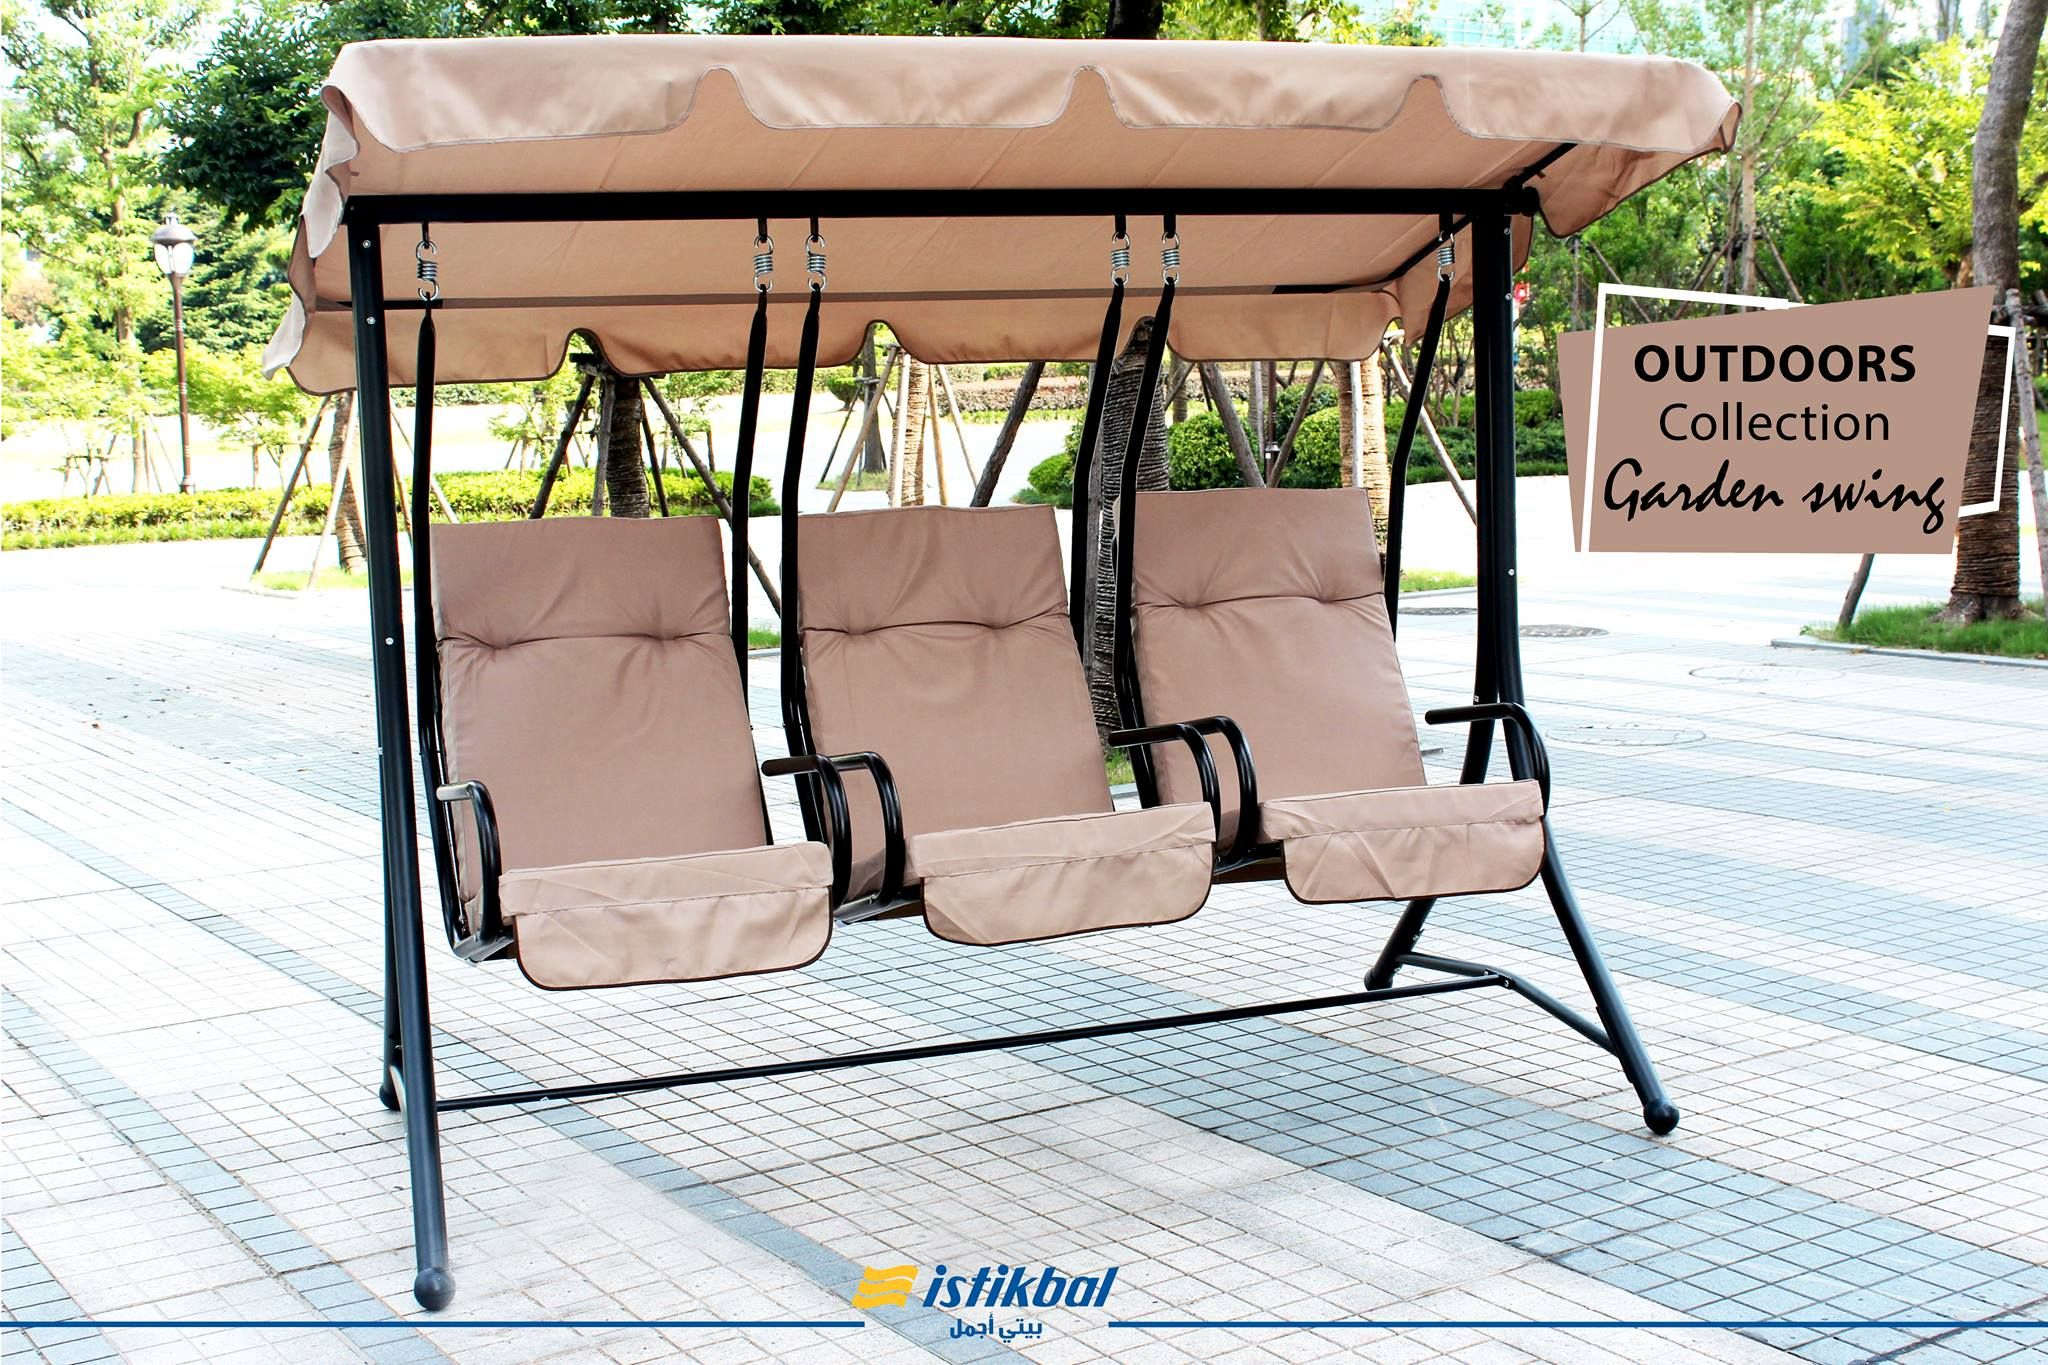 Istikbal Outdoors Outdoor Furniture